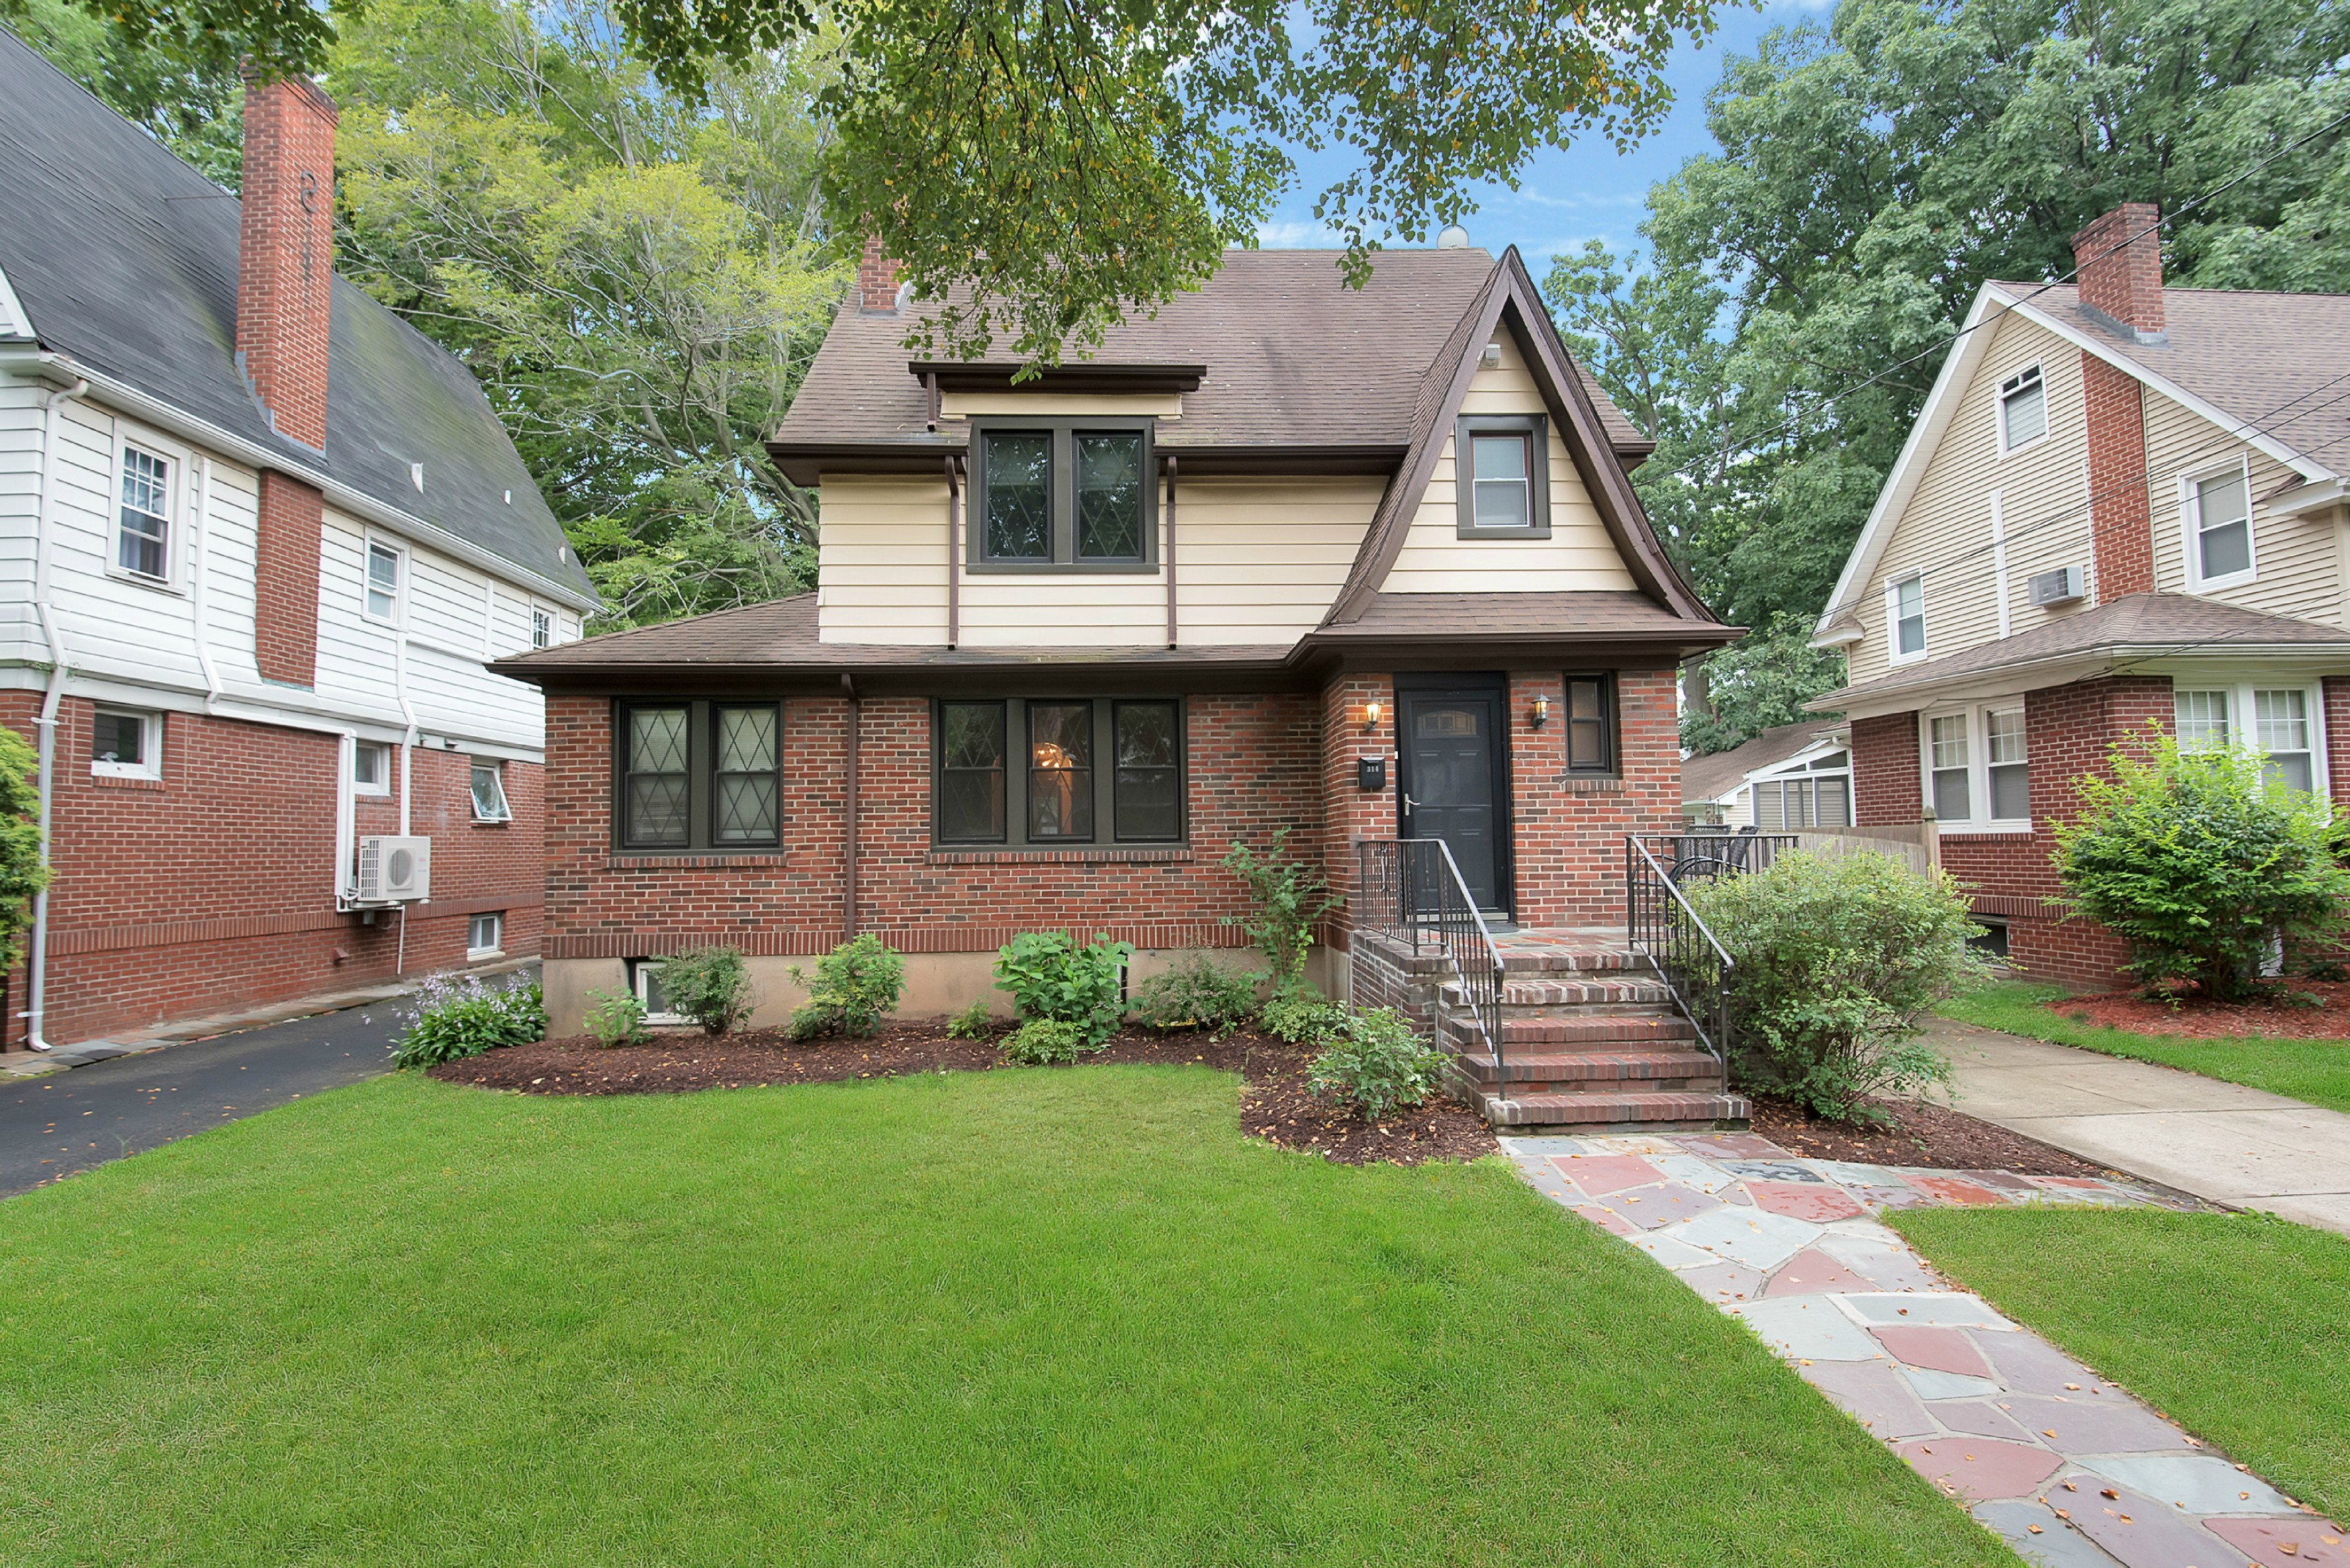 Single Family Home for Sale at Updated Teaneck Tudor! 314 Griggs Avenue Teaneck, 07666 United States